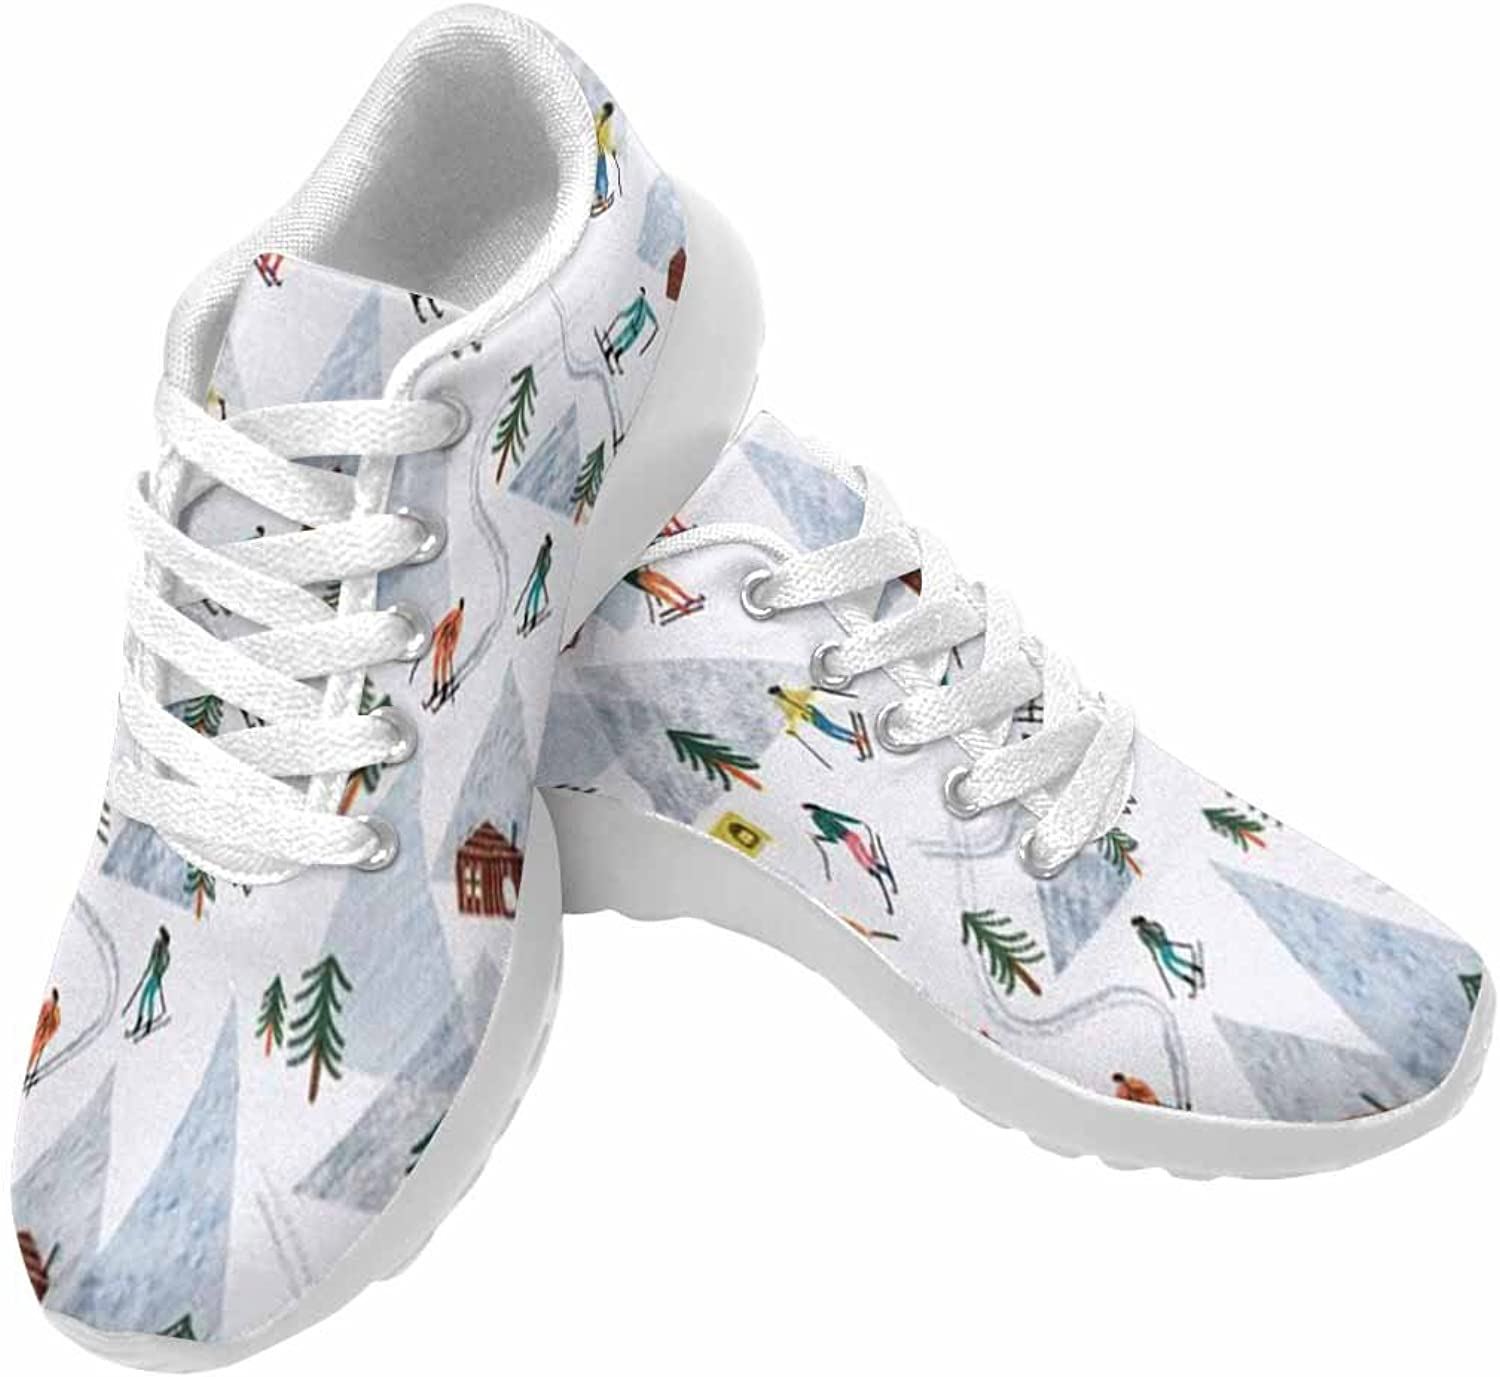 VIC Women's Lightweight Casual Walking Athletic shoes